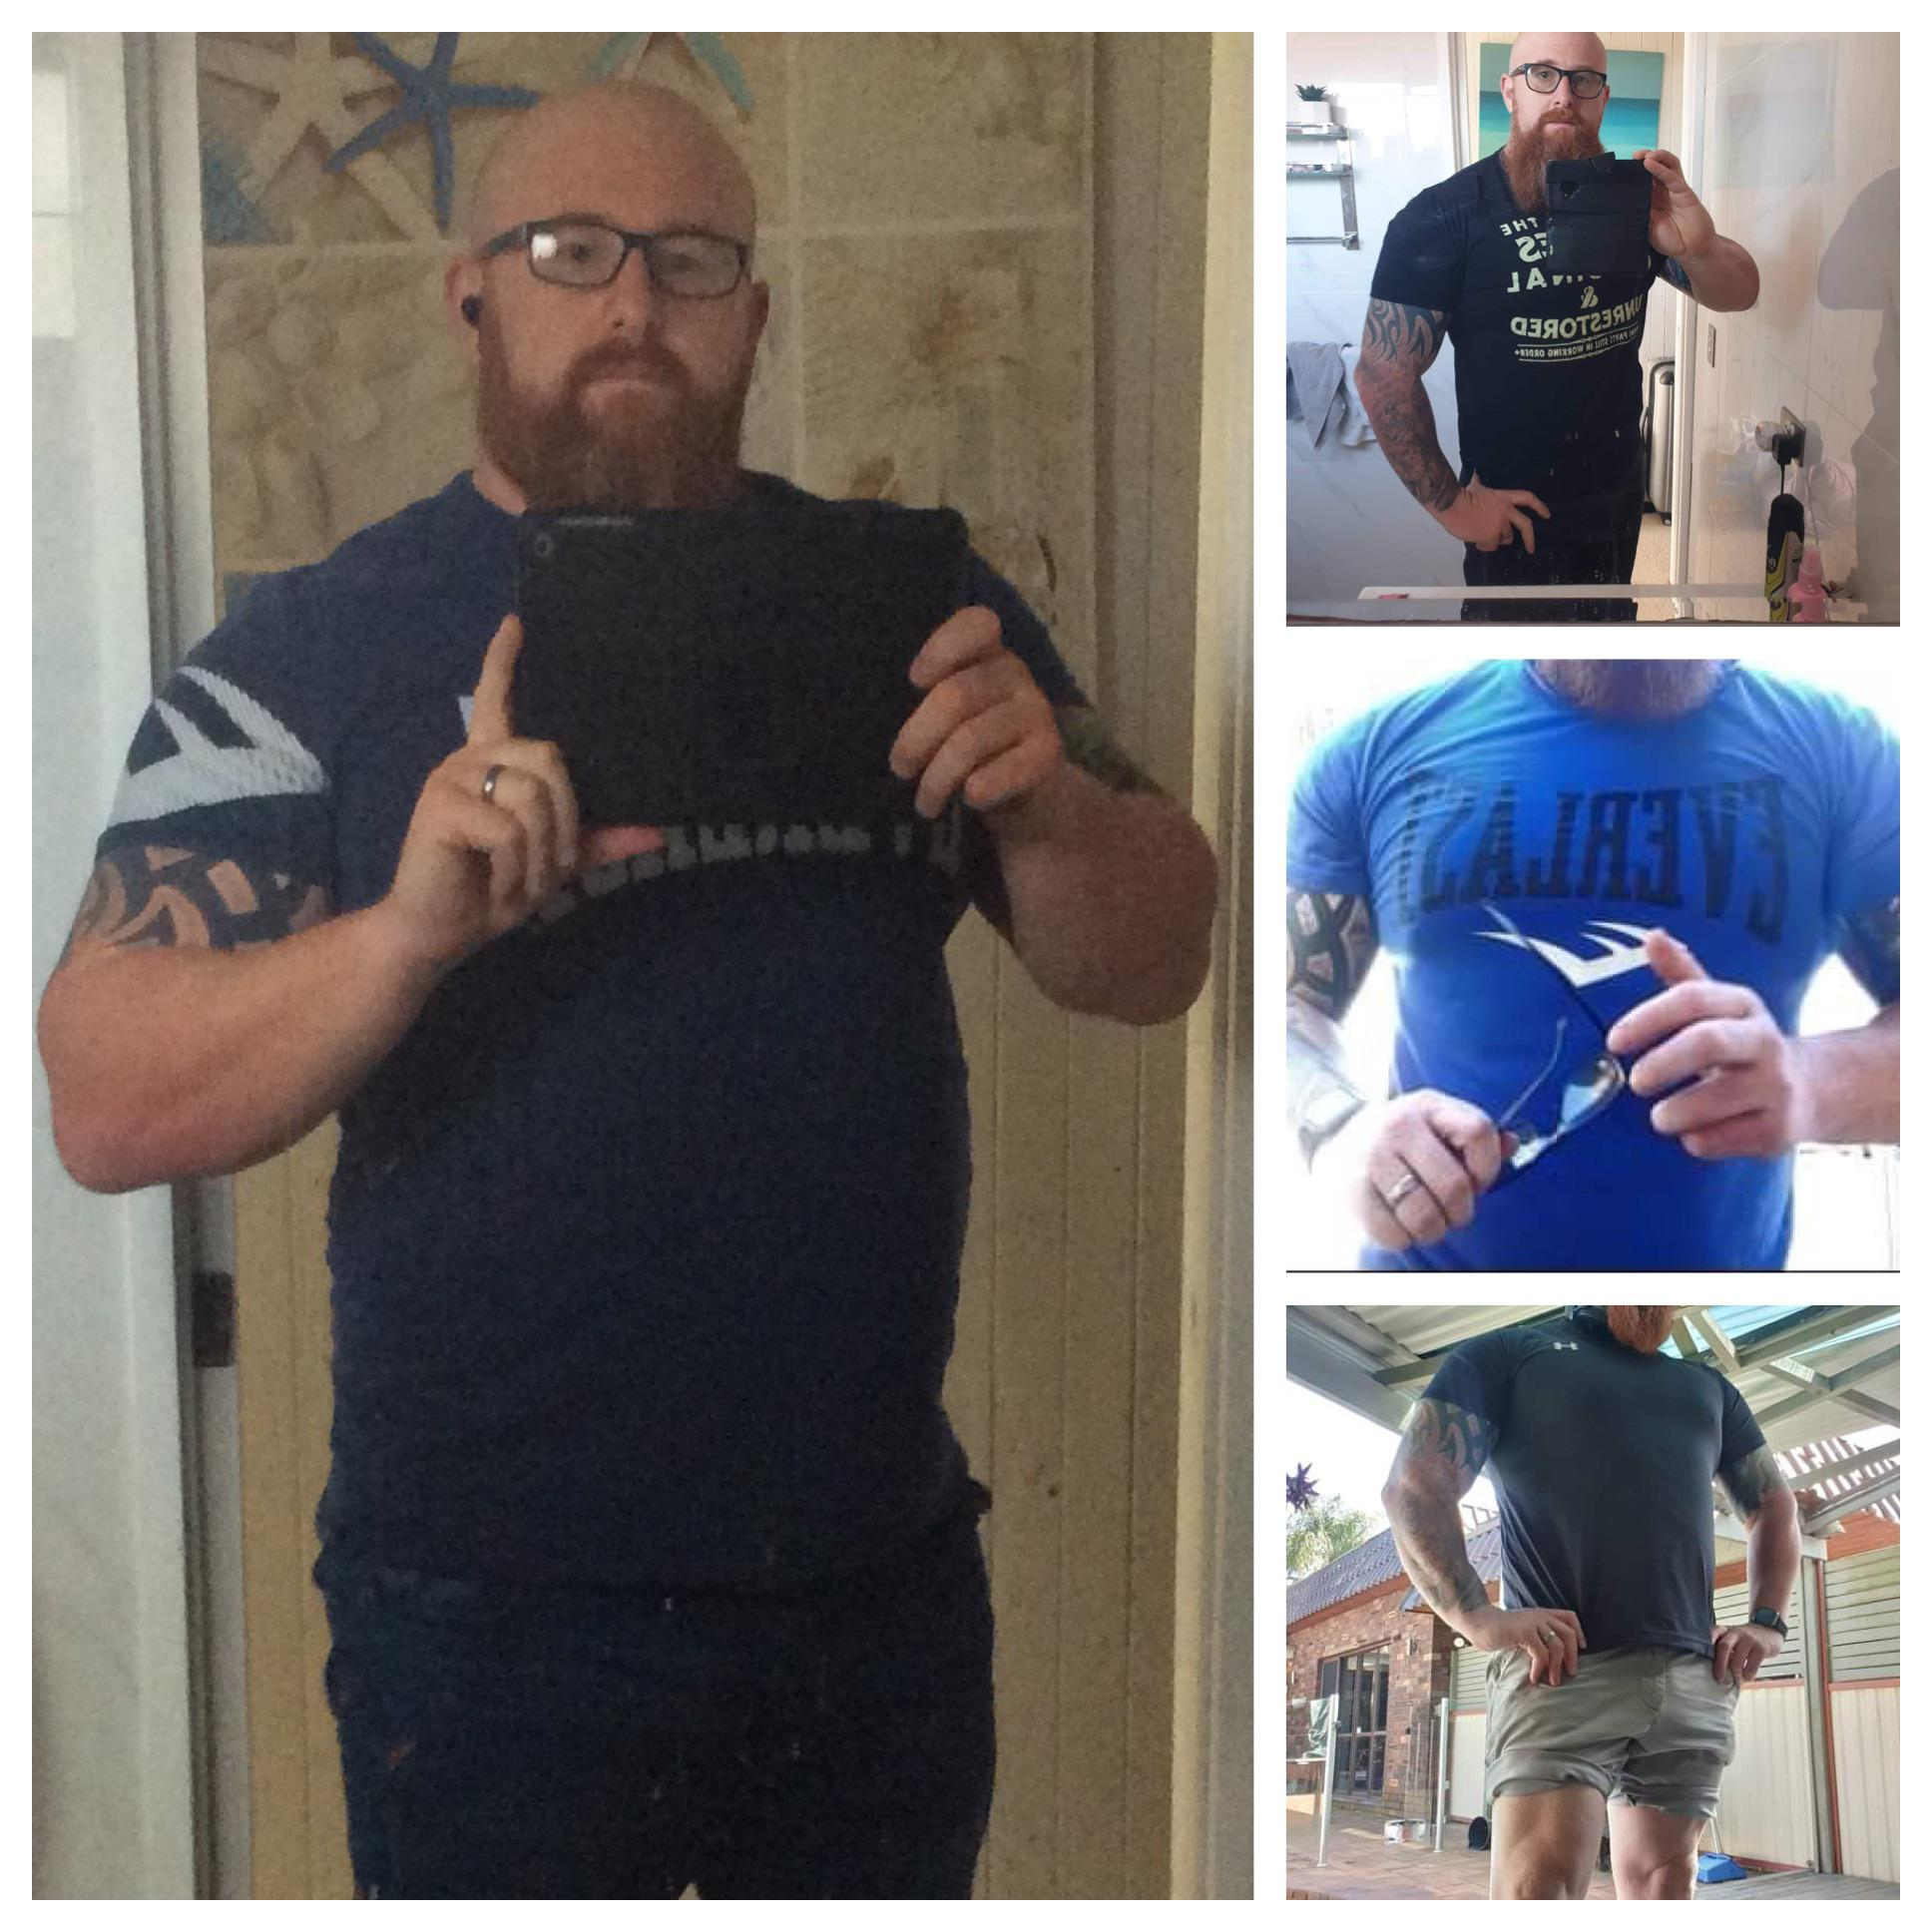 6 feet 1 Male Before and After 70 lbs Weight Loss 330 lbs to 260 lbs